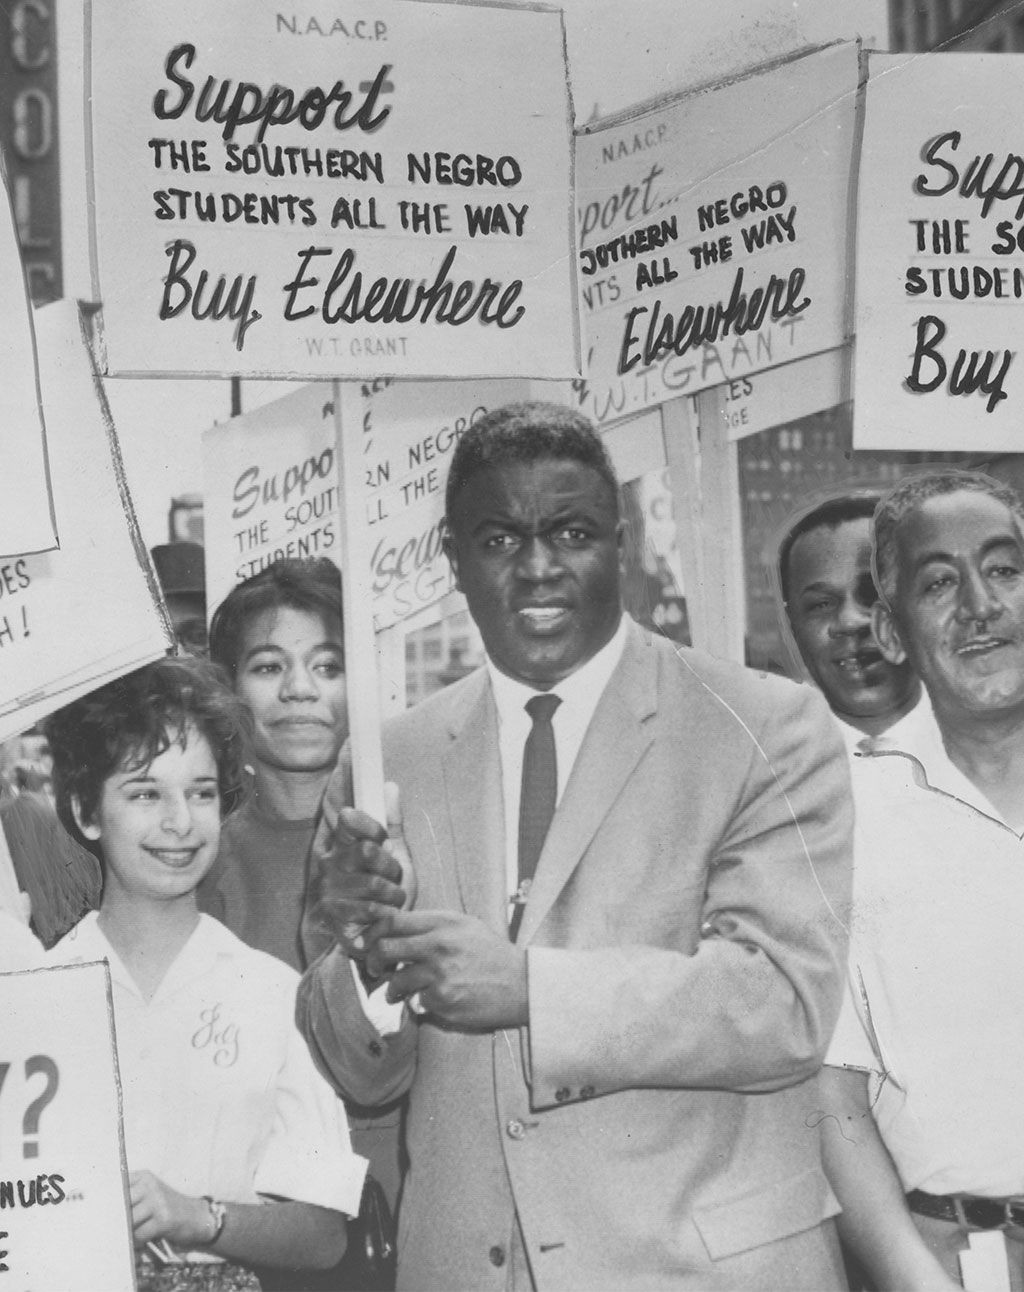 Jackie Robinson at an NAACP rally in Wisconsin to support Southern African American students, 1955<br/>Courtesy of Afro American Newspapers, Gado, Getty Images